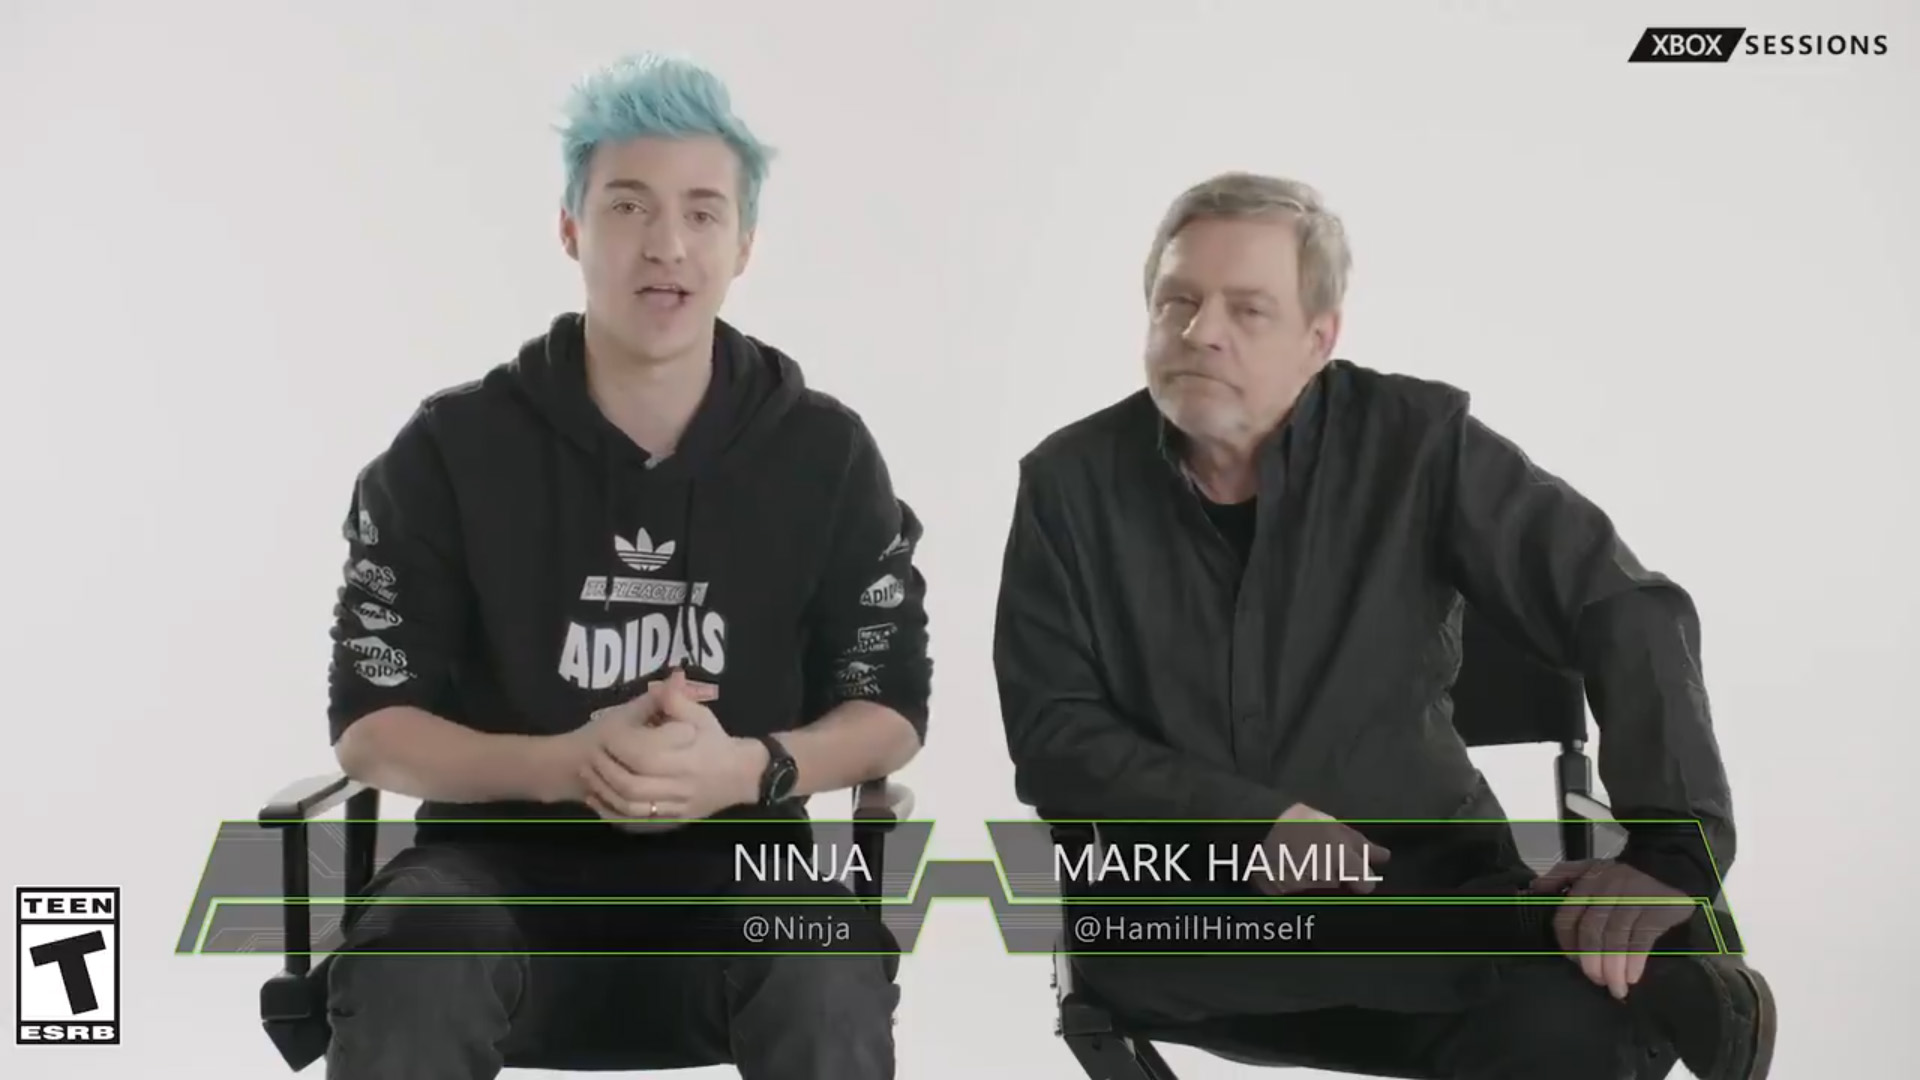 Mark Hamill (Luke Skywalker en Star Wars), estrella del gran evento de Fortnite de Ninja